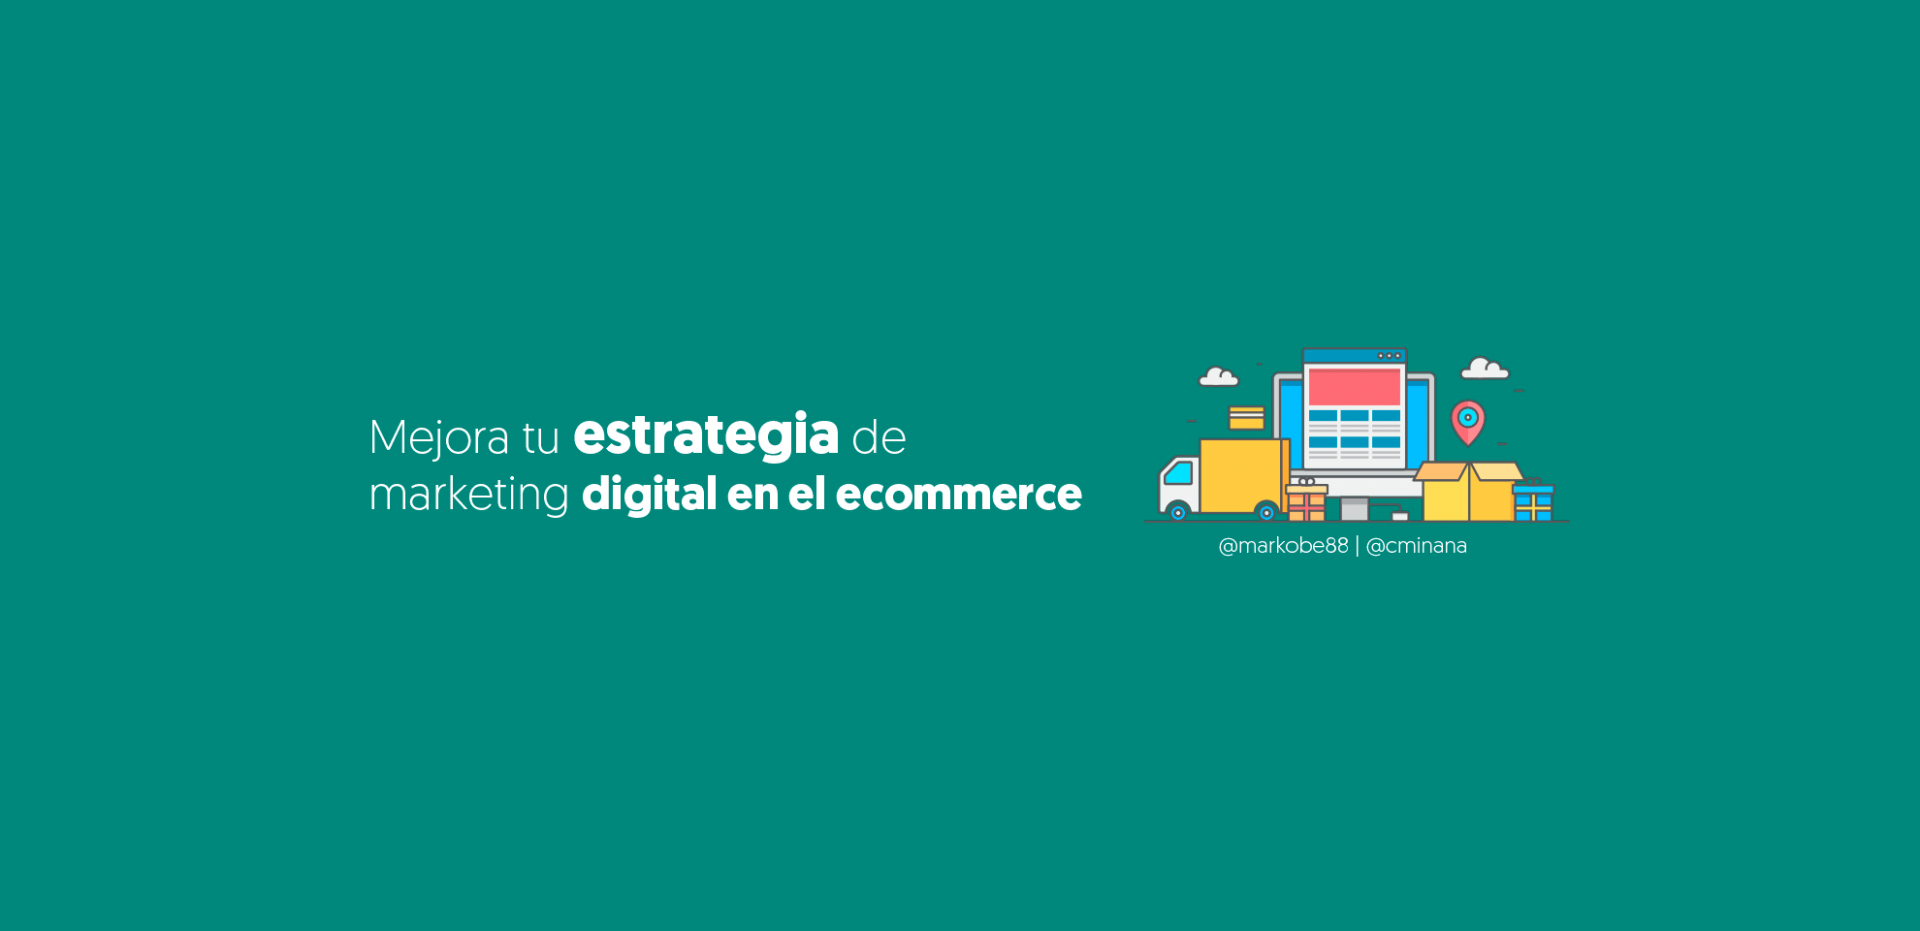 estrategia de marketing digital ecommerce